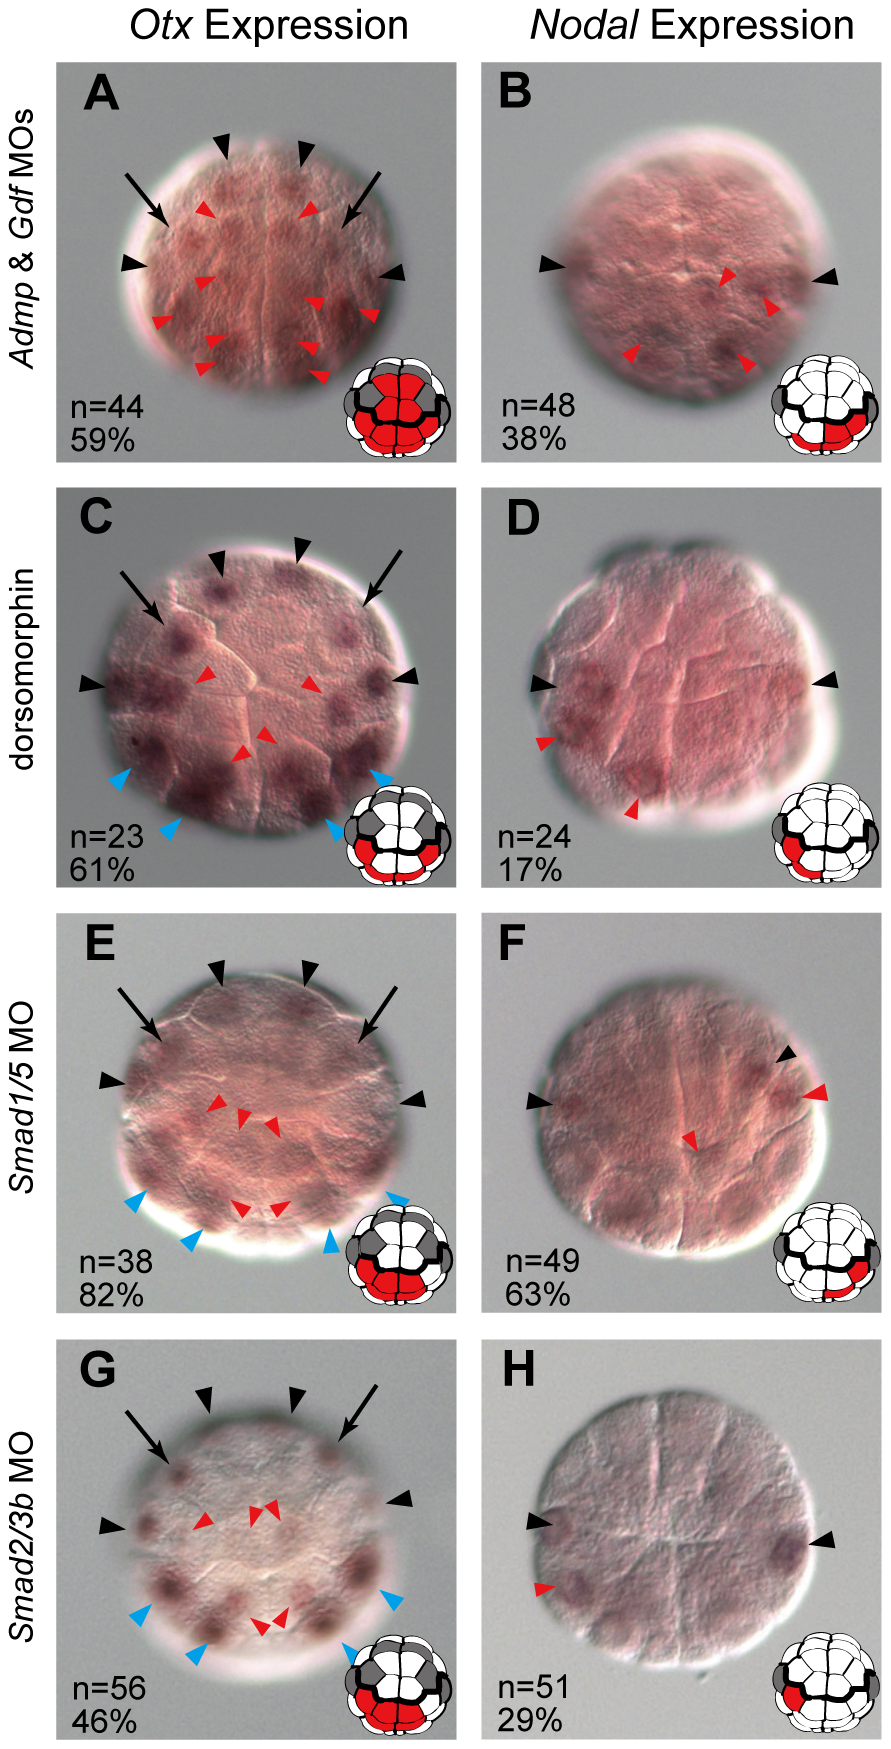 Admp and Gdf1/3-like signaling cooperatively regulates neural fate.